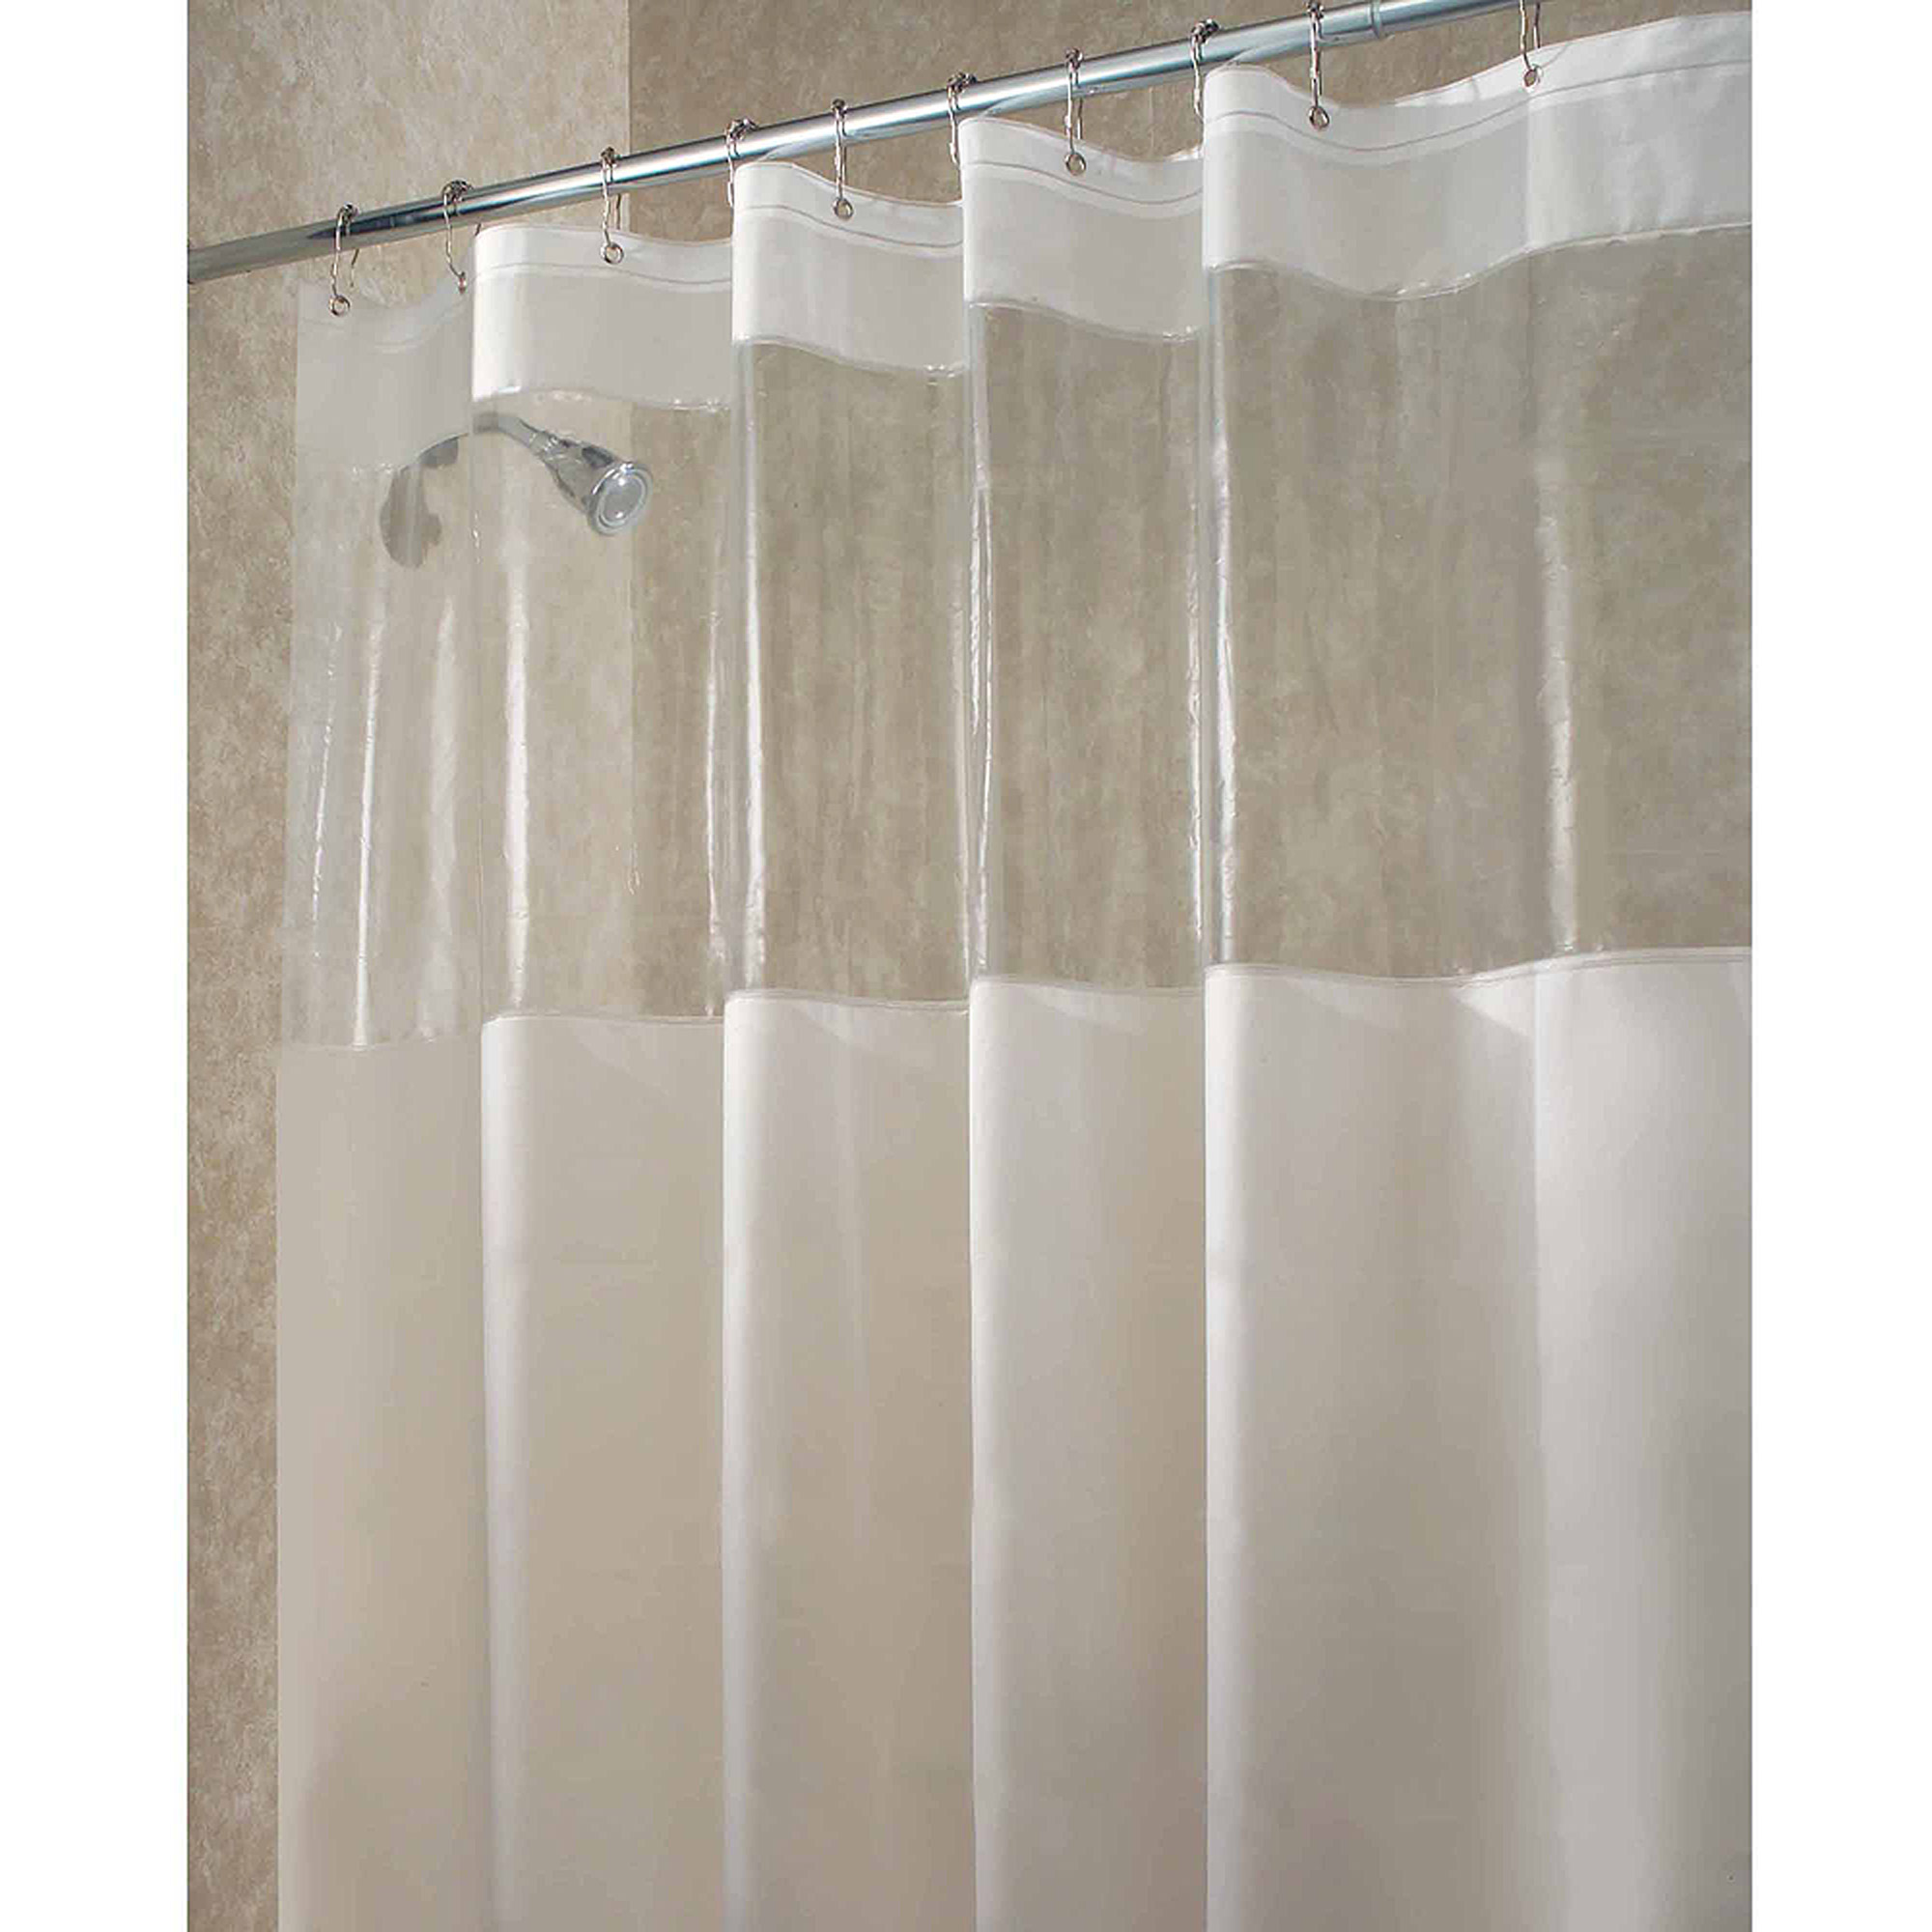 InterDesign Hitchcock EVA Shower Curtain, Various Sizes